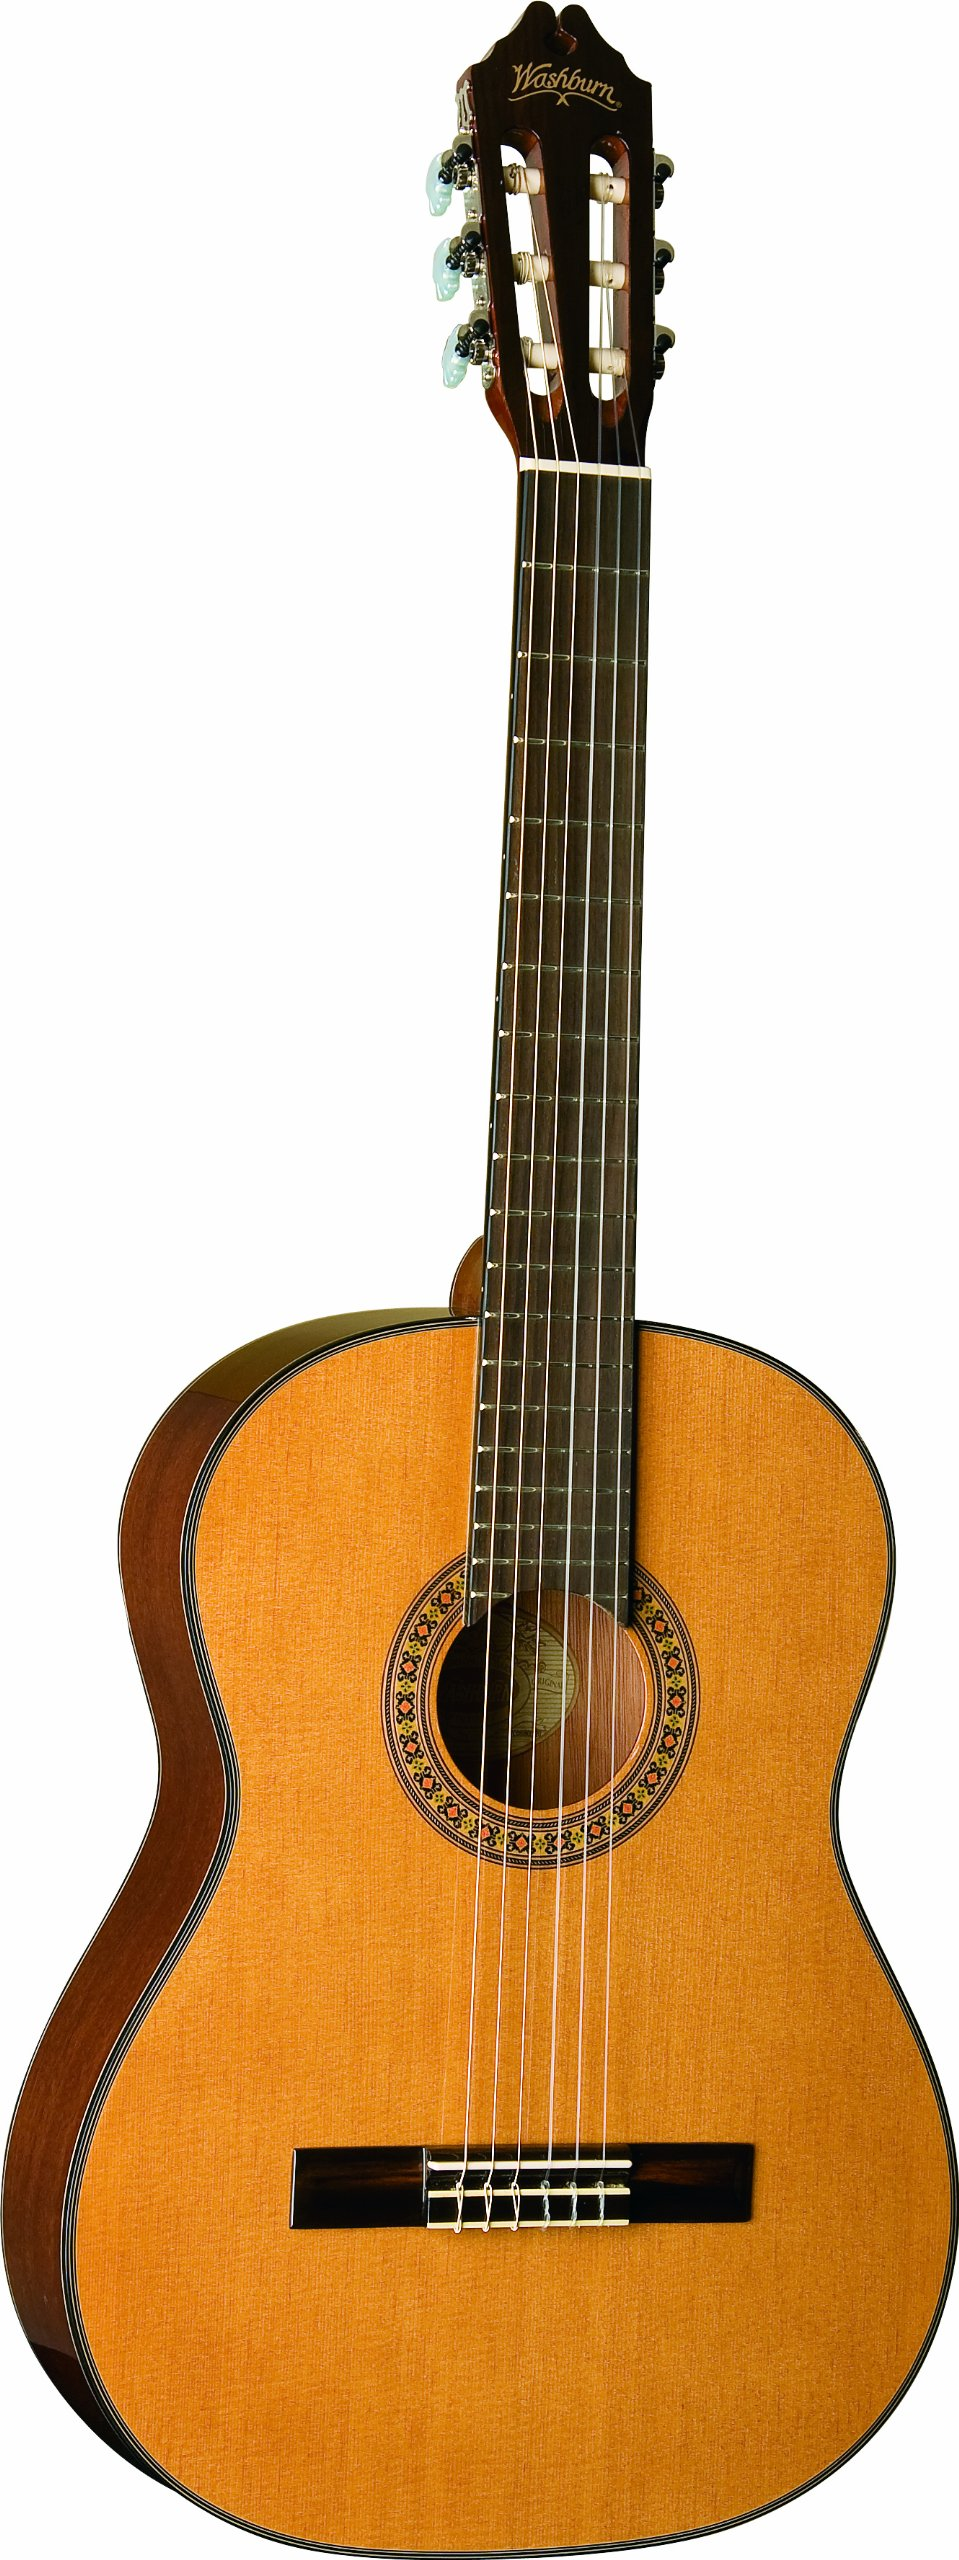 Washburn Classical Series Acoustic Guitar by Washburn